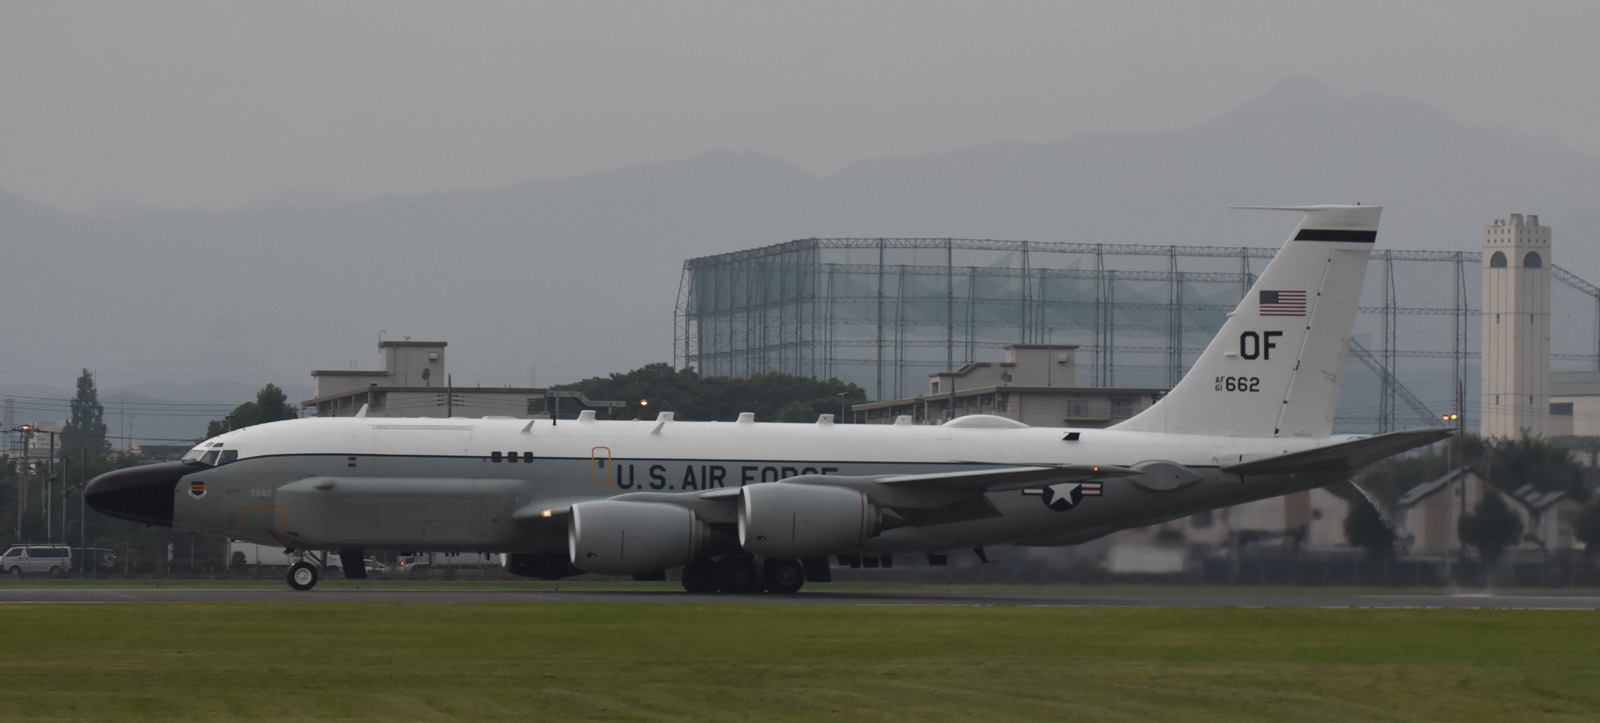 Rc135s170704g648